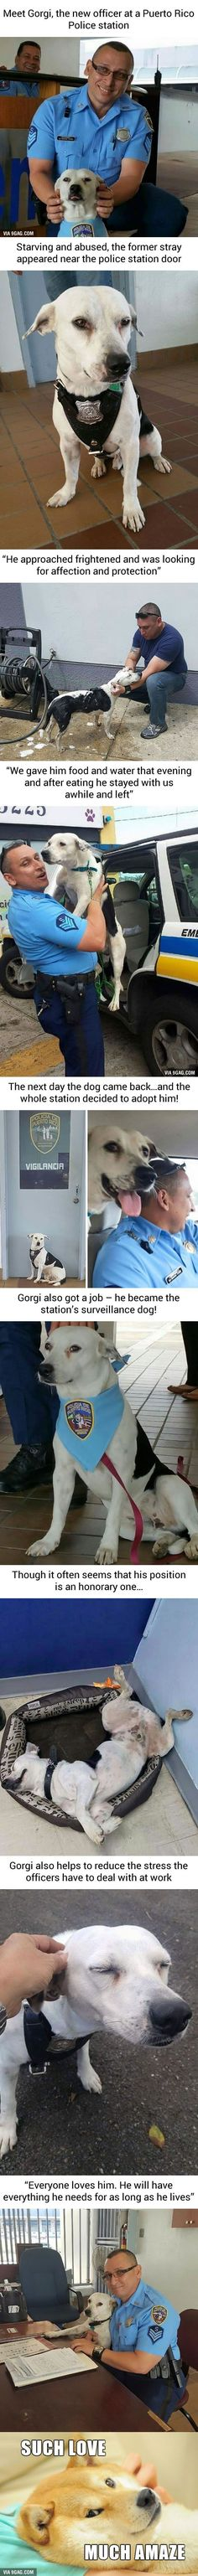 Stray Dog Walks Into Police Station, Gets A Job - :)